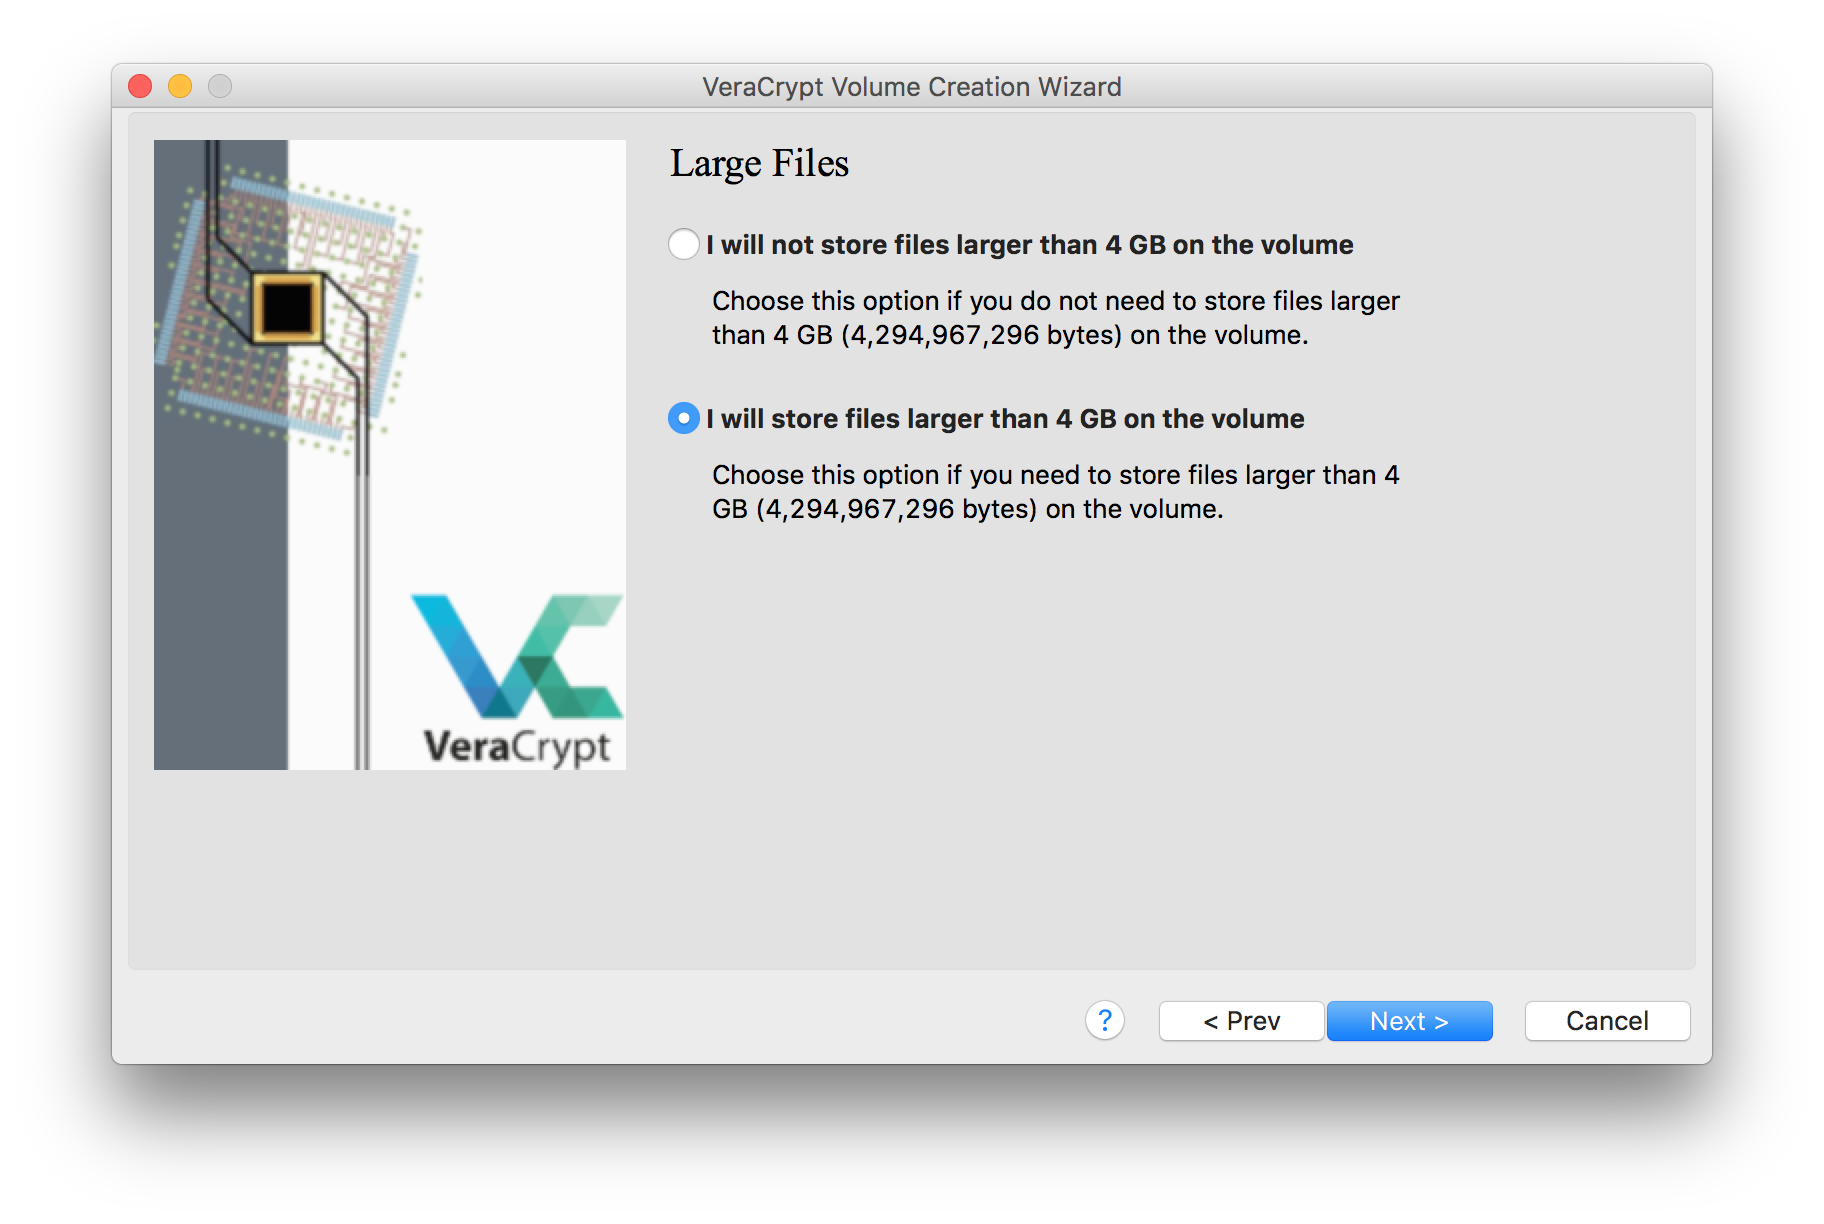 An image of the VeraCrypt volume creation window, with the option to format the volume to store files over 4 GB